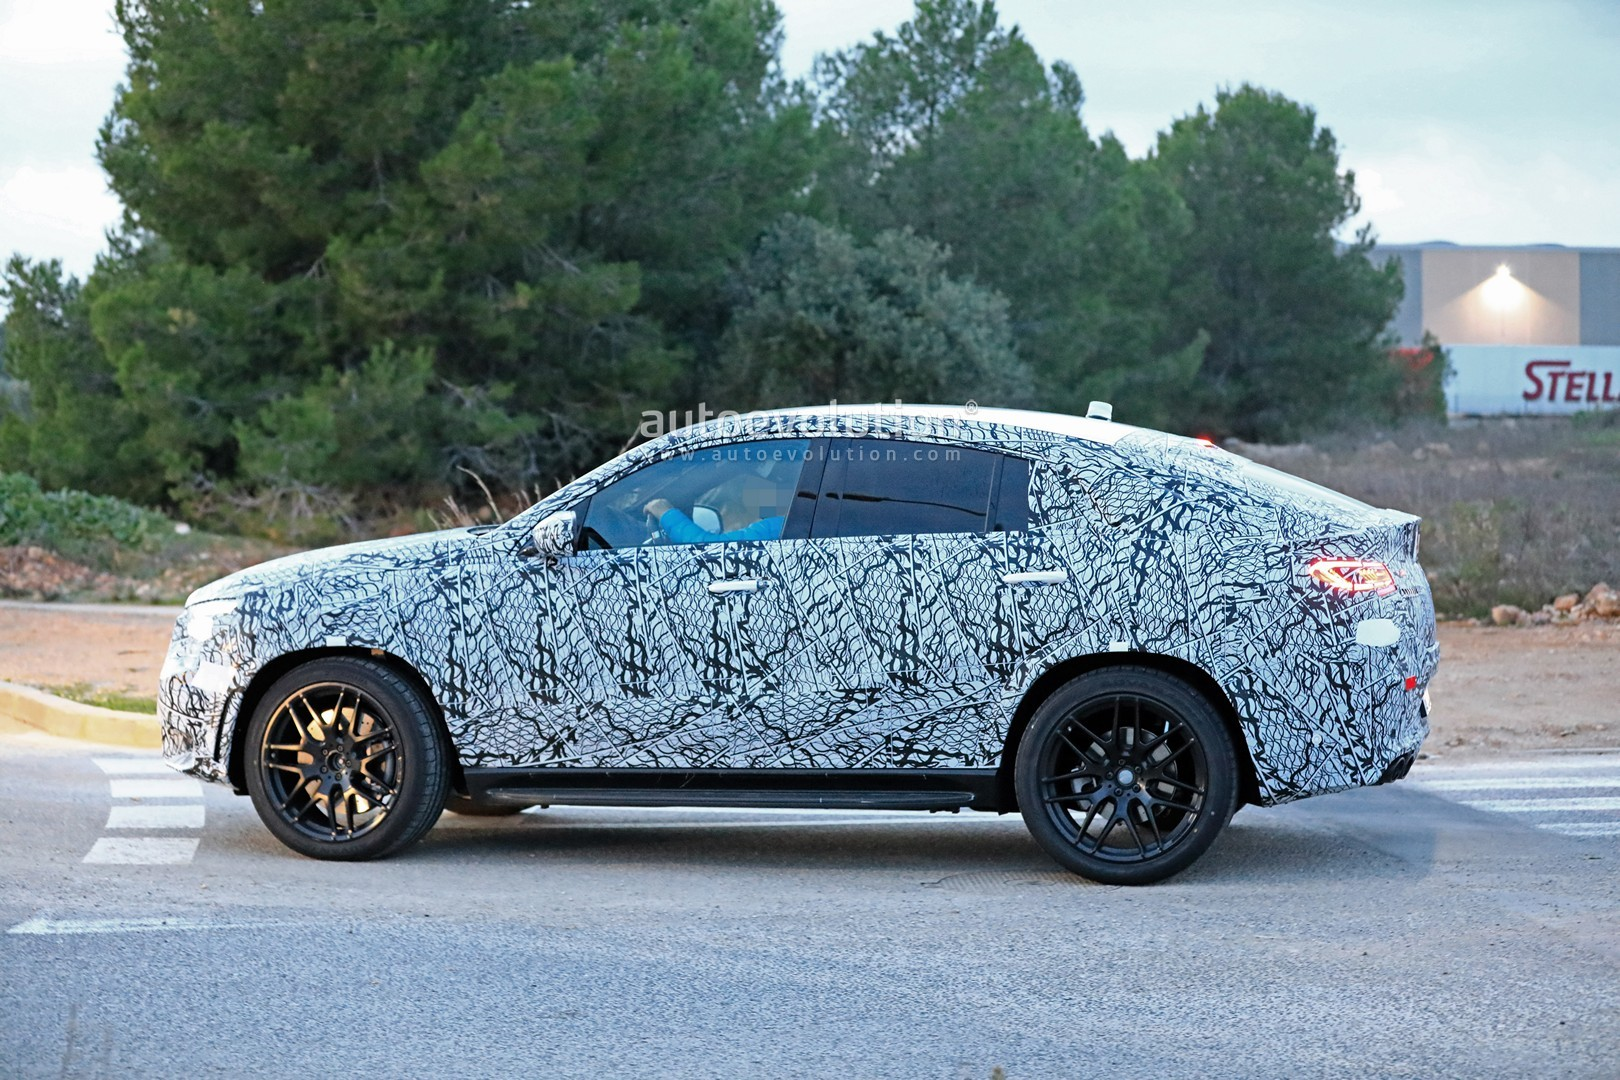 mercedes-a​mg-gle-53-​coupe-make​s-spyshot-​debut-with​-quad-exha​ust-tips_6